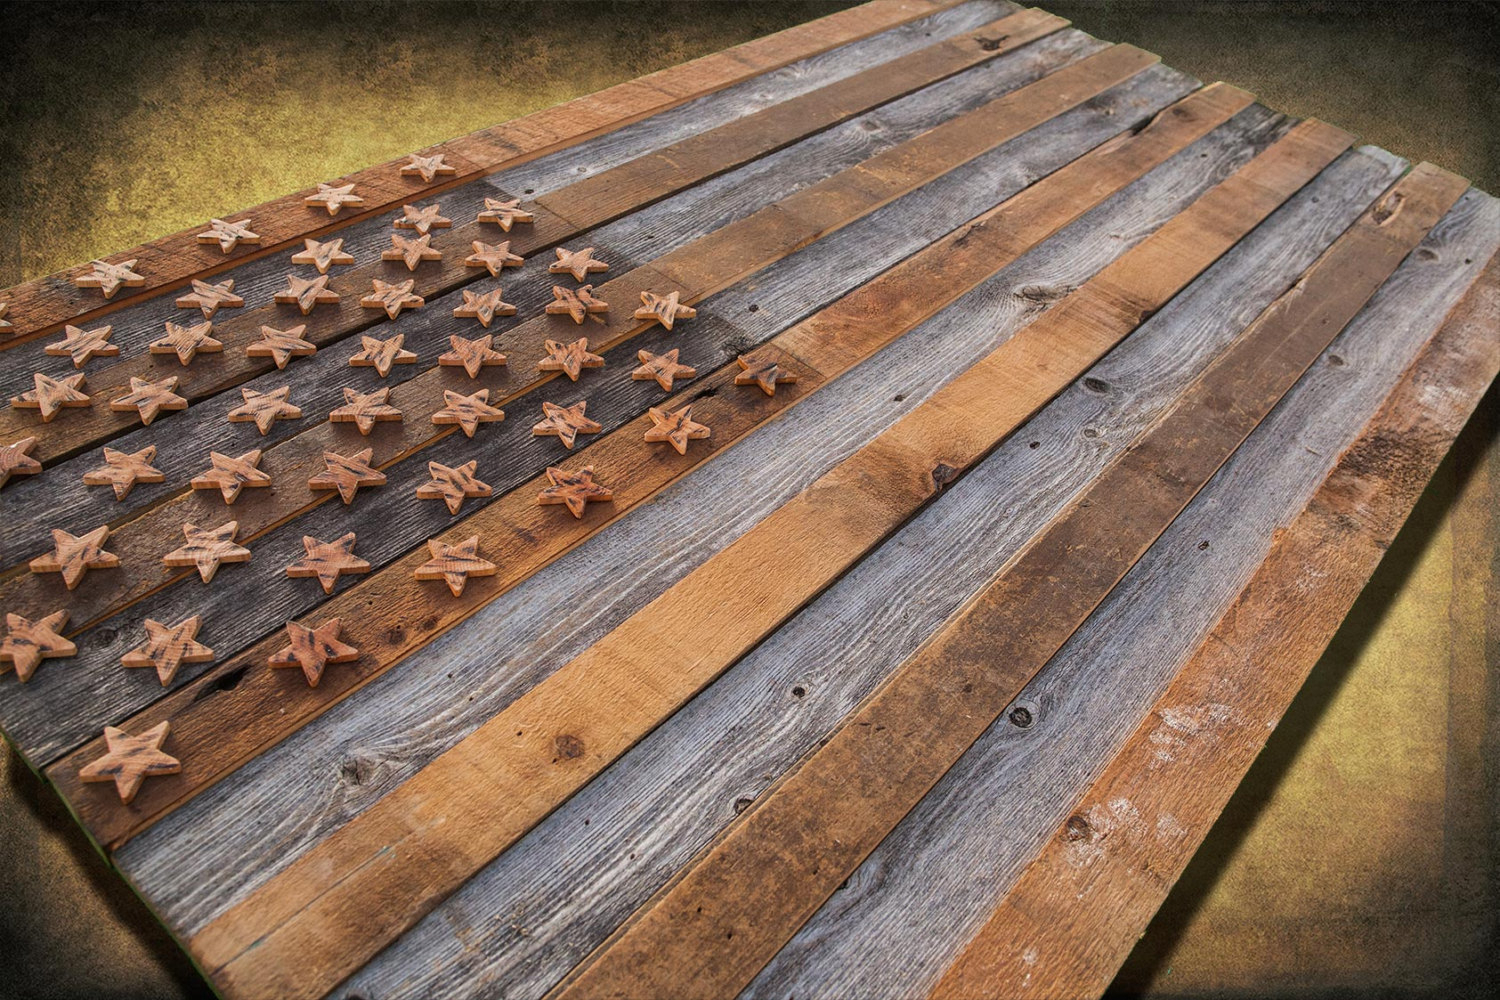 Barnwood American Flag, 100 Year Old Wood, One Of A Kind, 3D, Wooden Within Fashionable American Flag 3D Wall Decor (View 9 of 20)